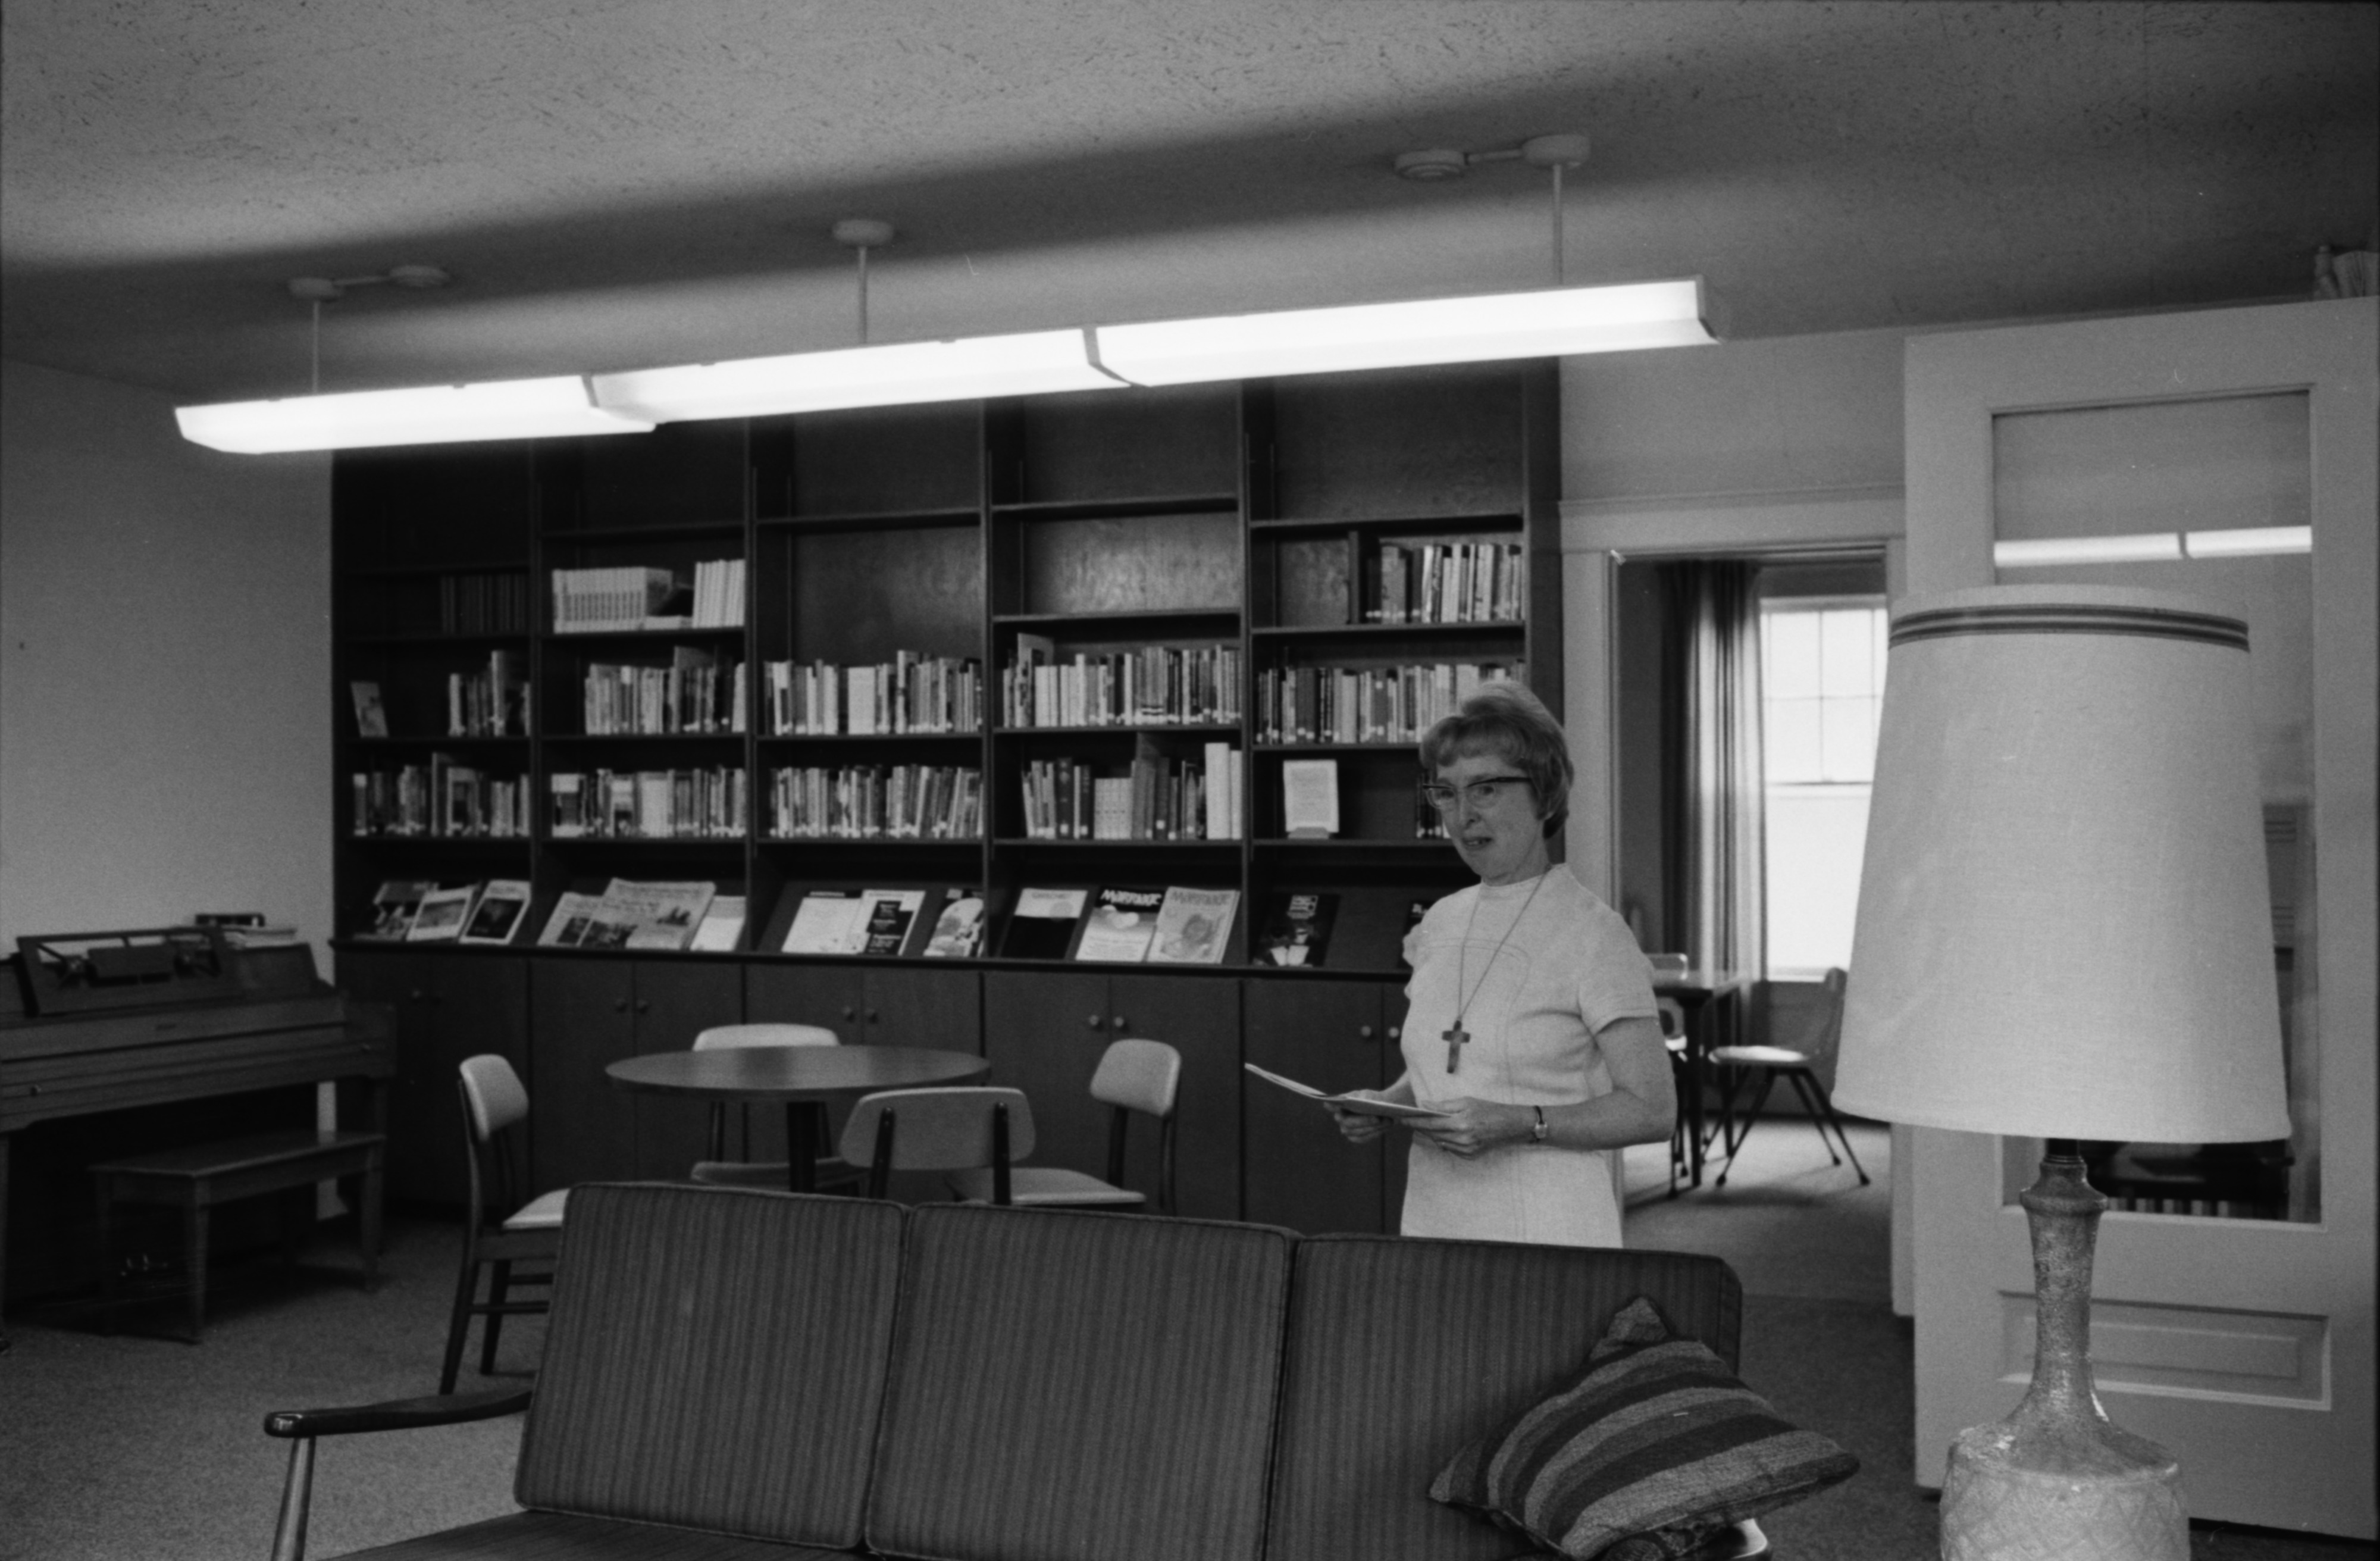 Sister Dolora Neumaier in Library of St. Thomas Parish Center, August 1974 image